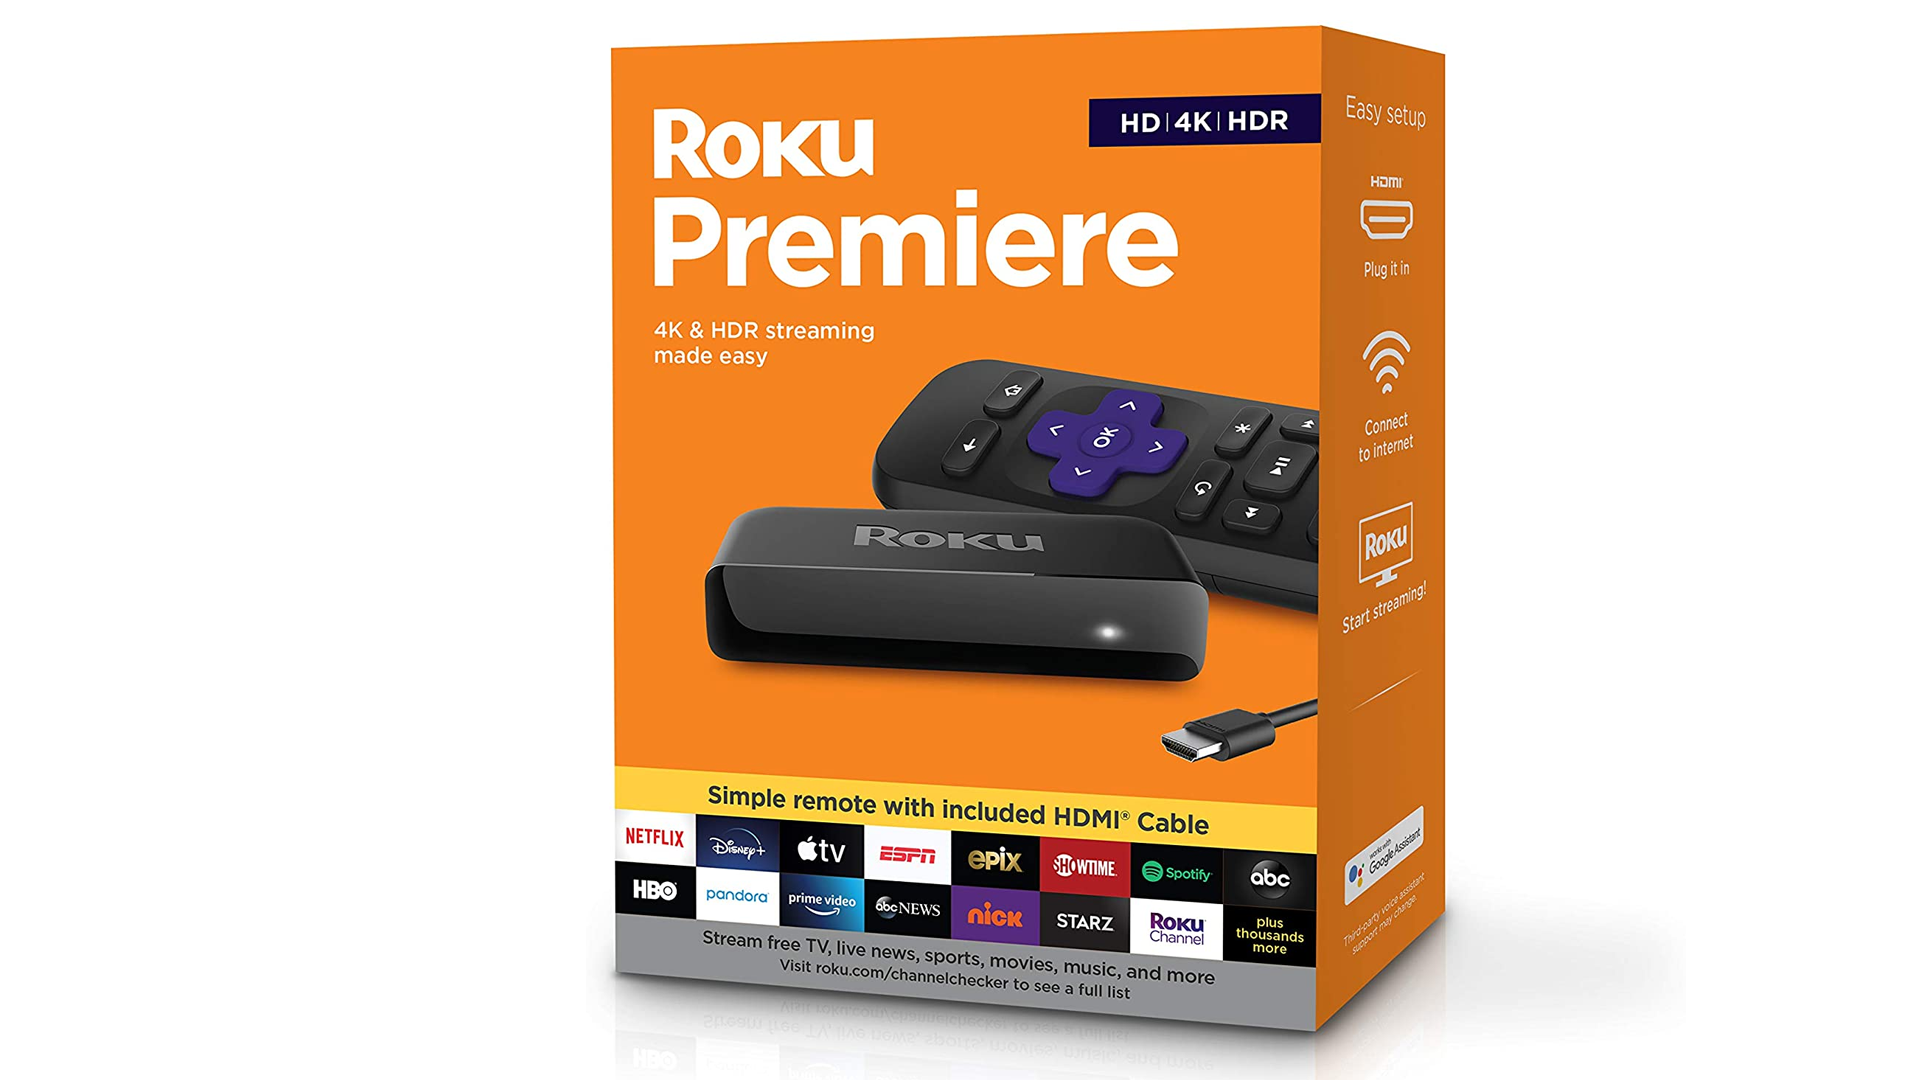 A photo of the Roku Premiere box.